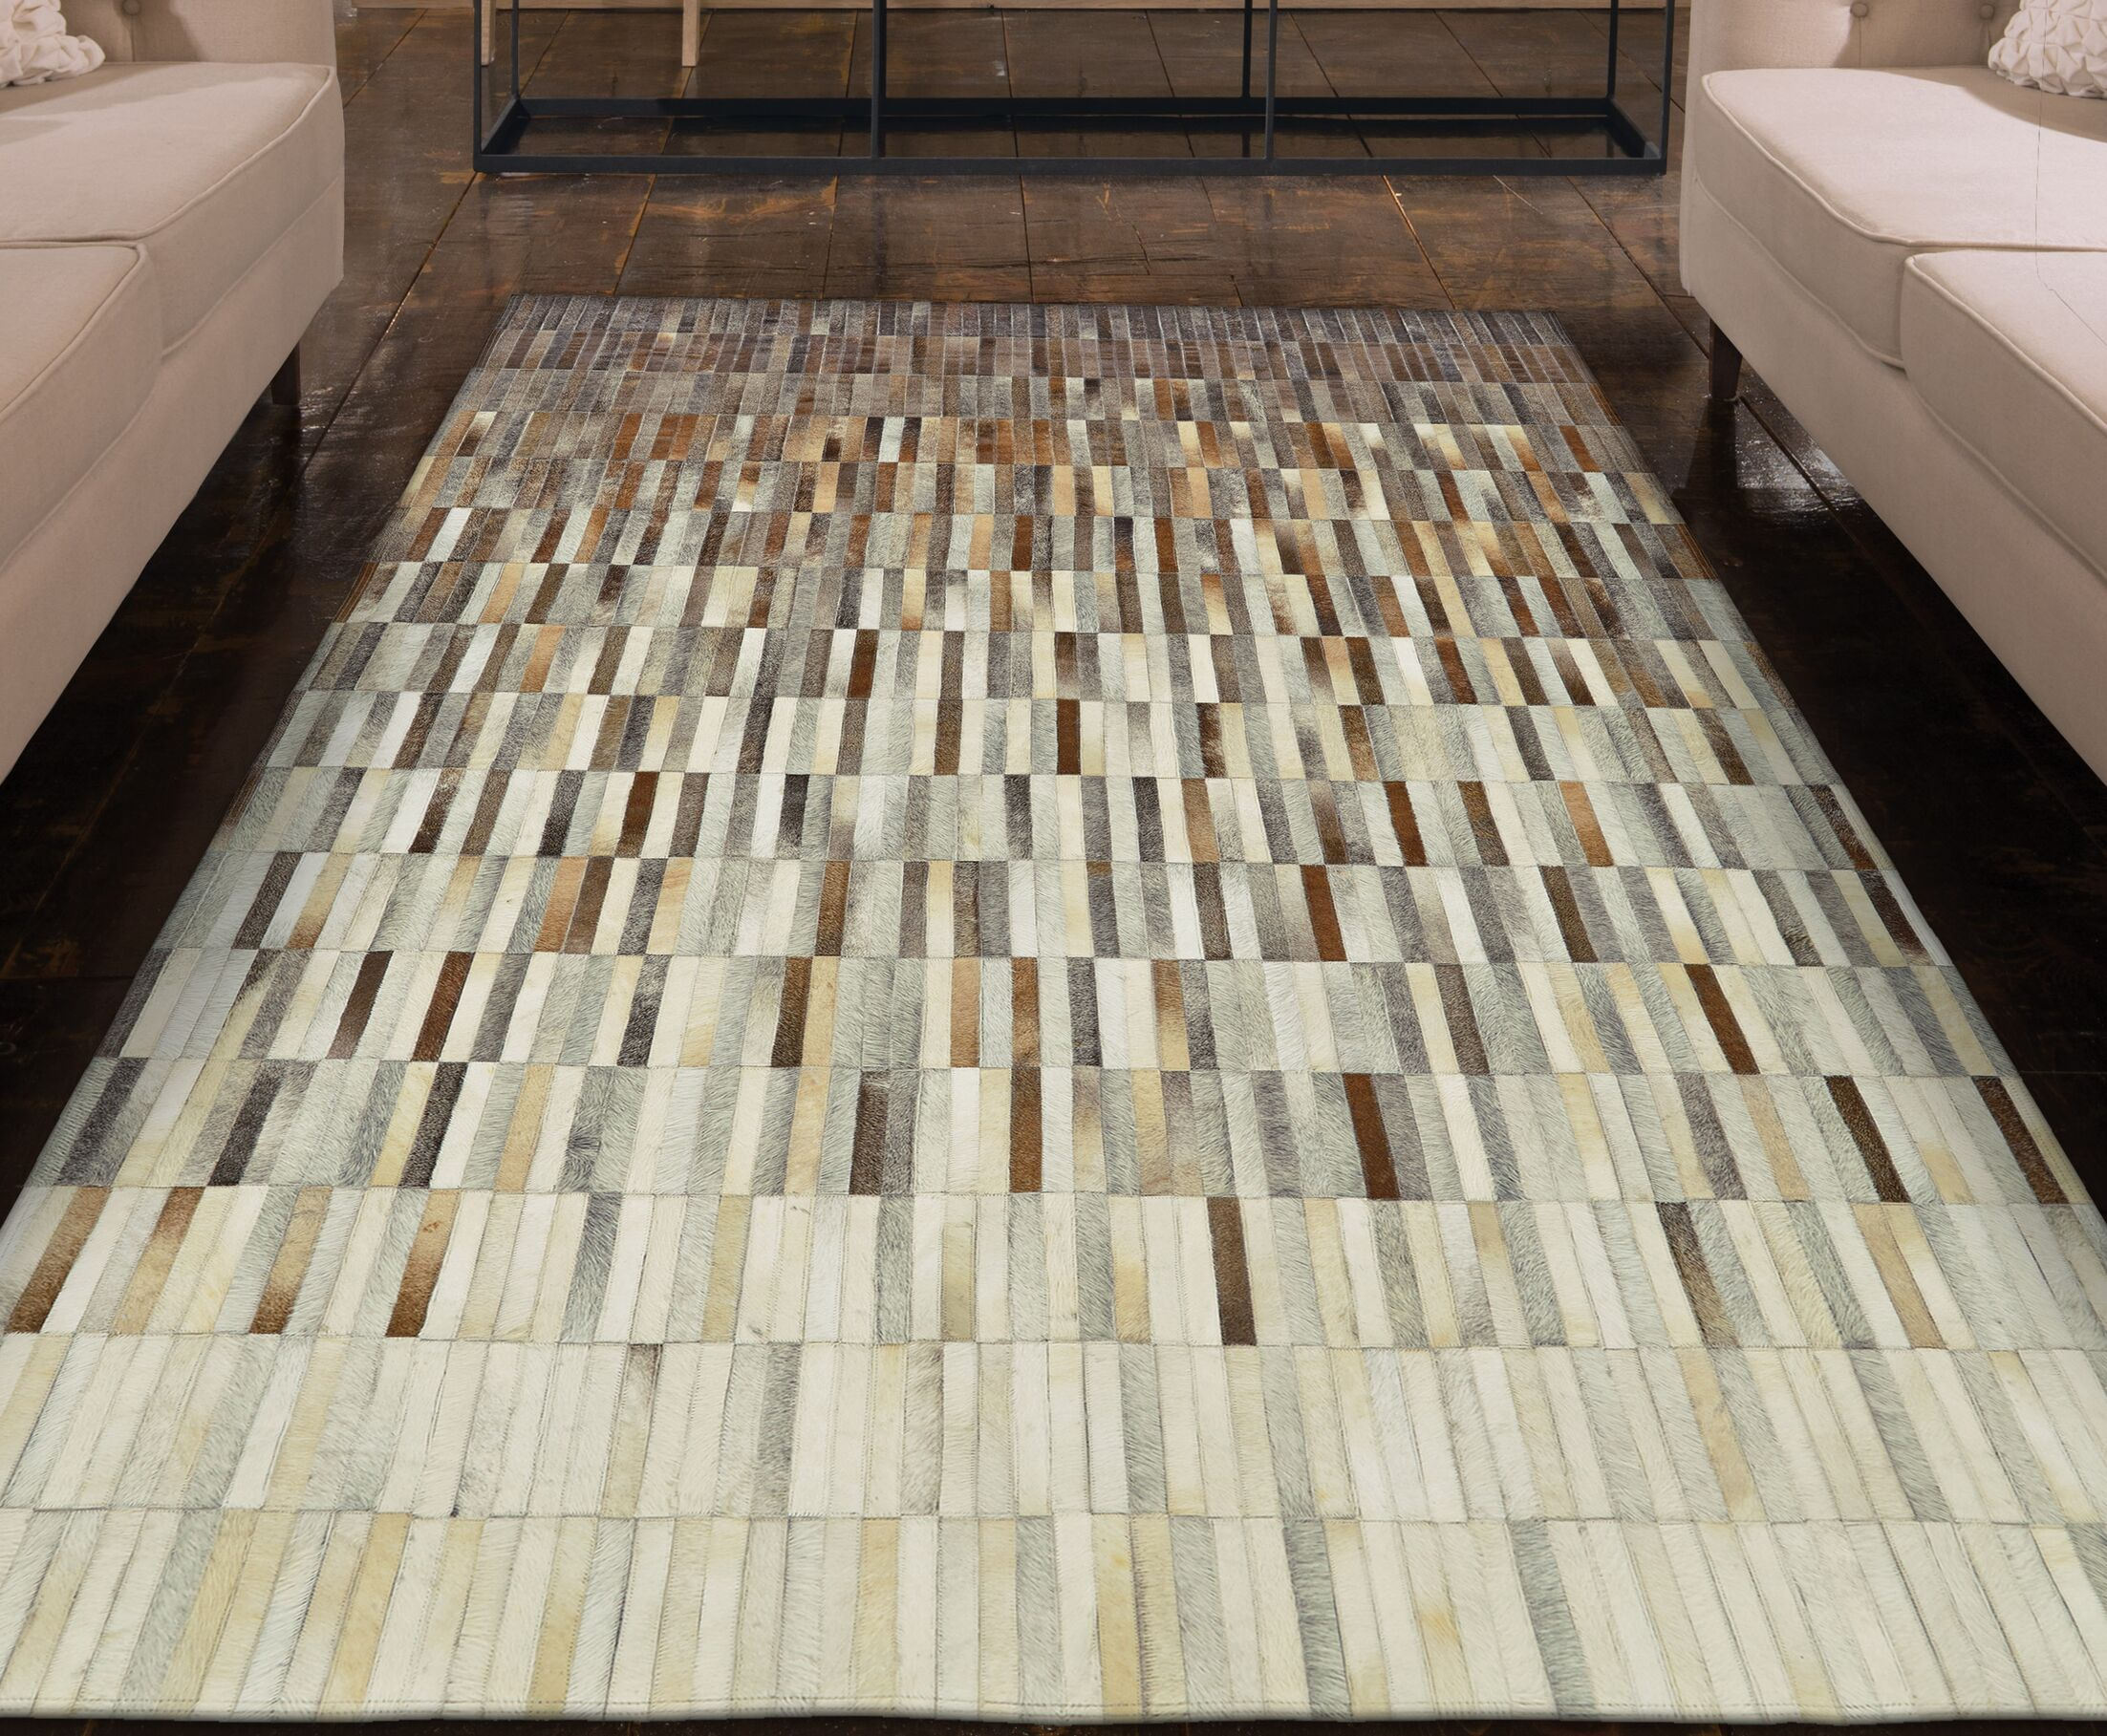 Alysa Hand-Stitched Brown/Gray Area Rug Rug Size: Rectangle 6' x 9'